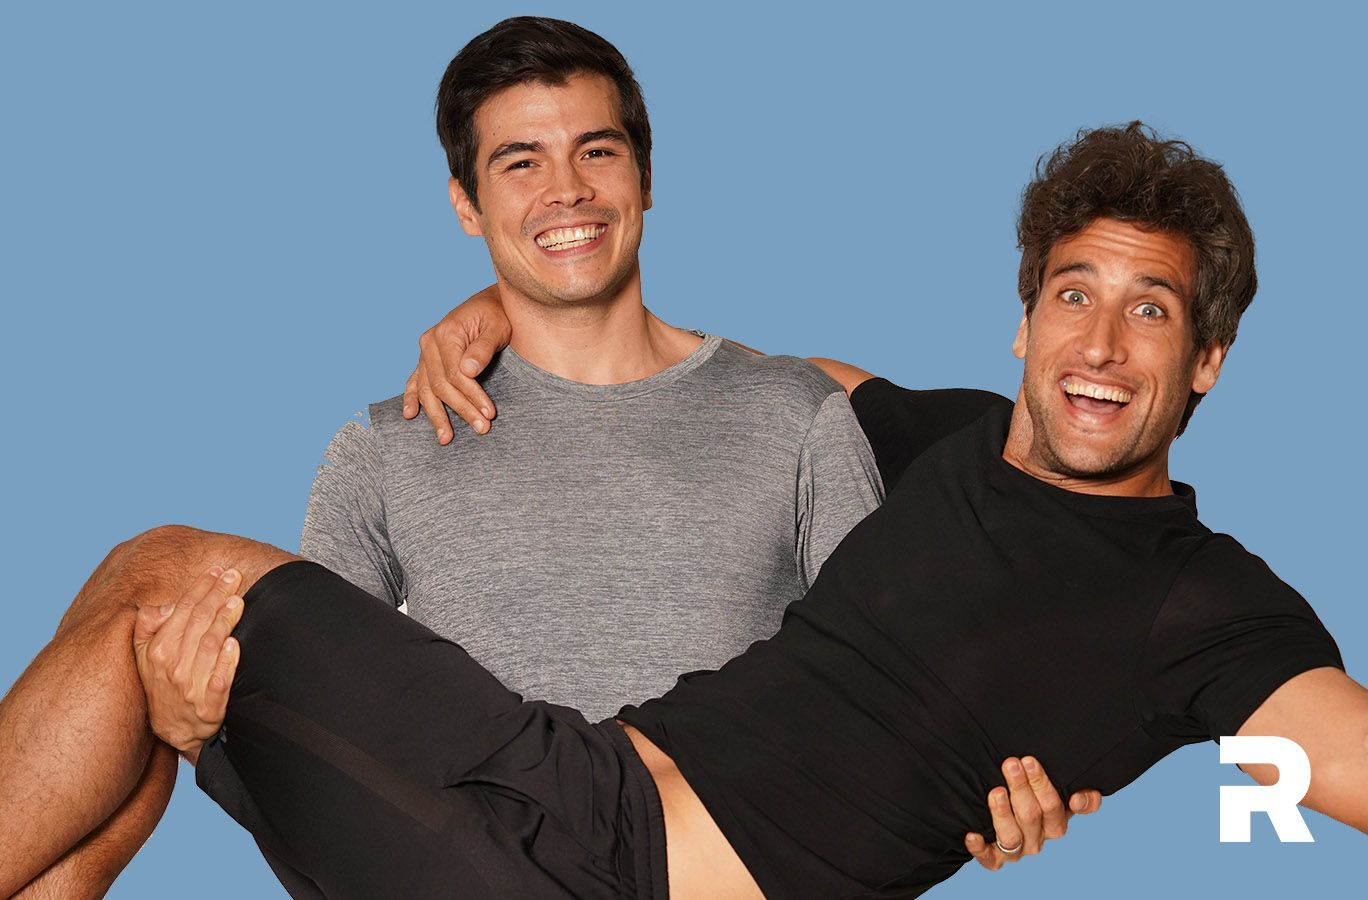 REBEL App by Nico Bolzico and Erwan Heussaff: Making Fitness Easy